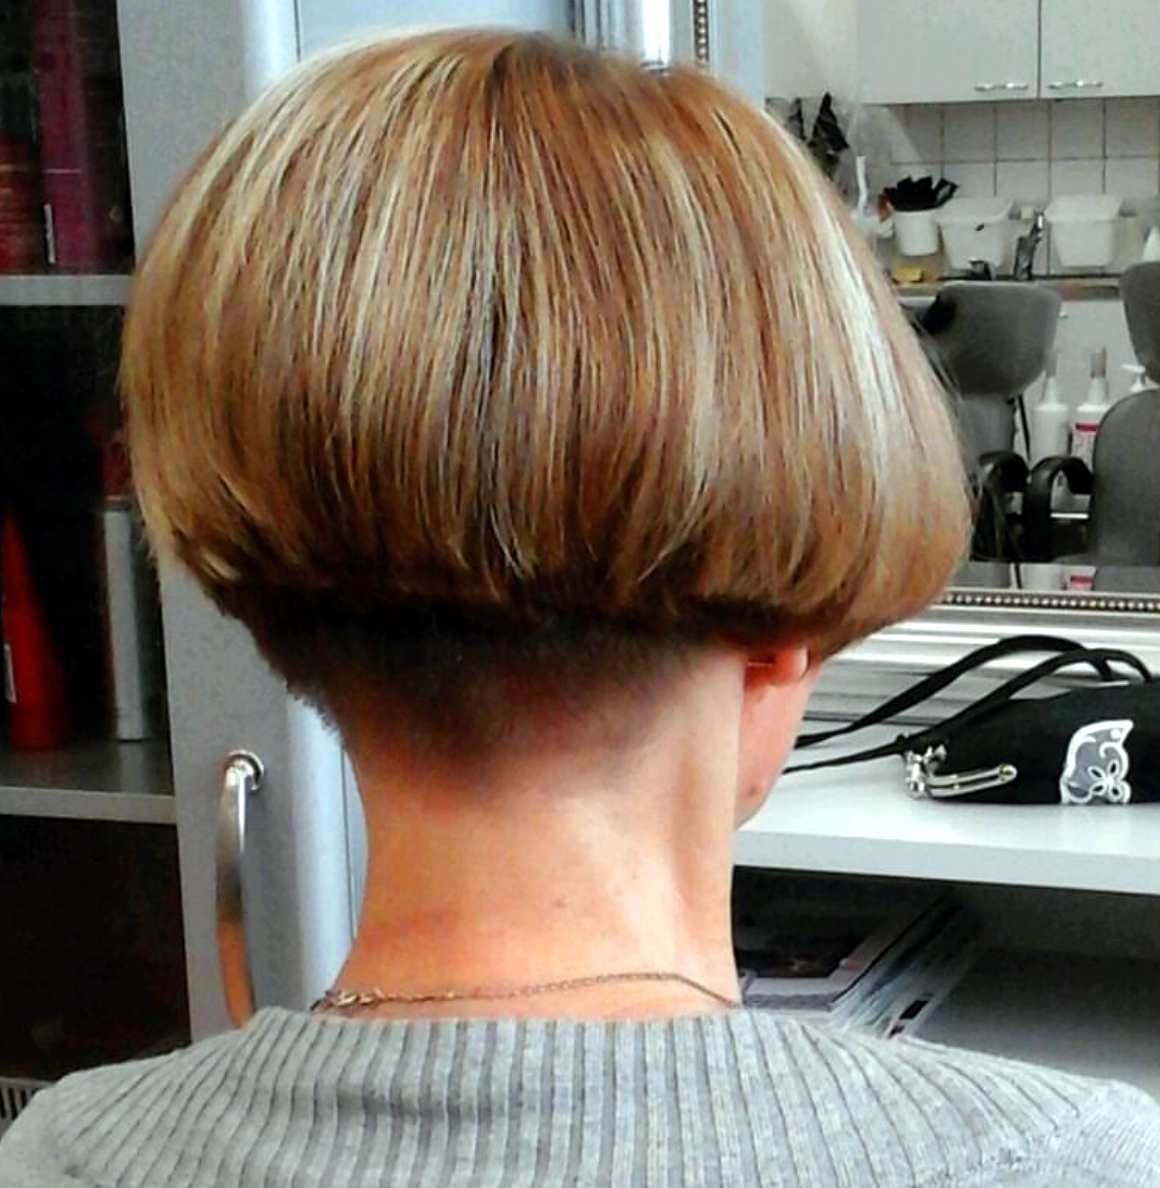 All sizes | Bob from the back | Flickr - Photo Sharing! | Dos de cheveux courtes, Coupe de cheveux